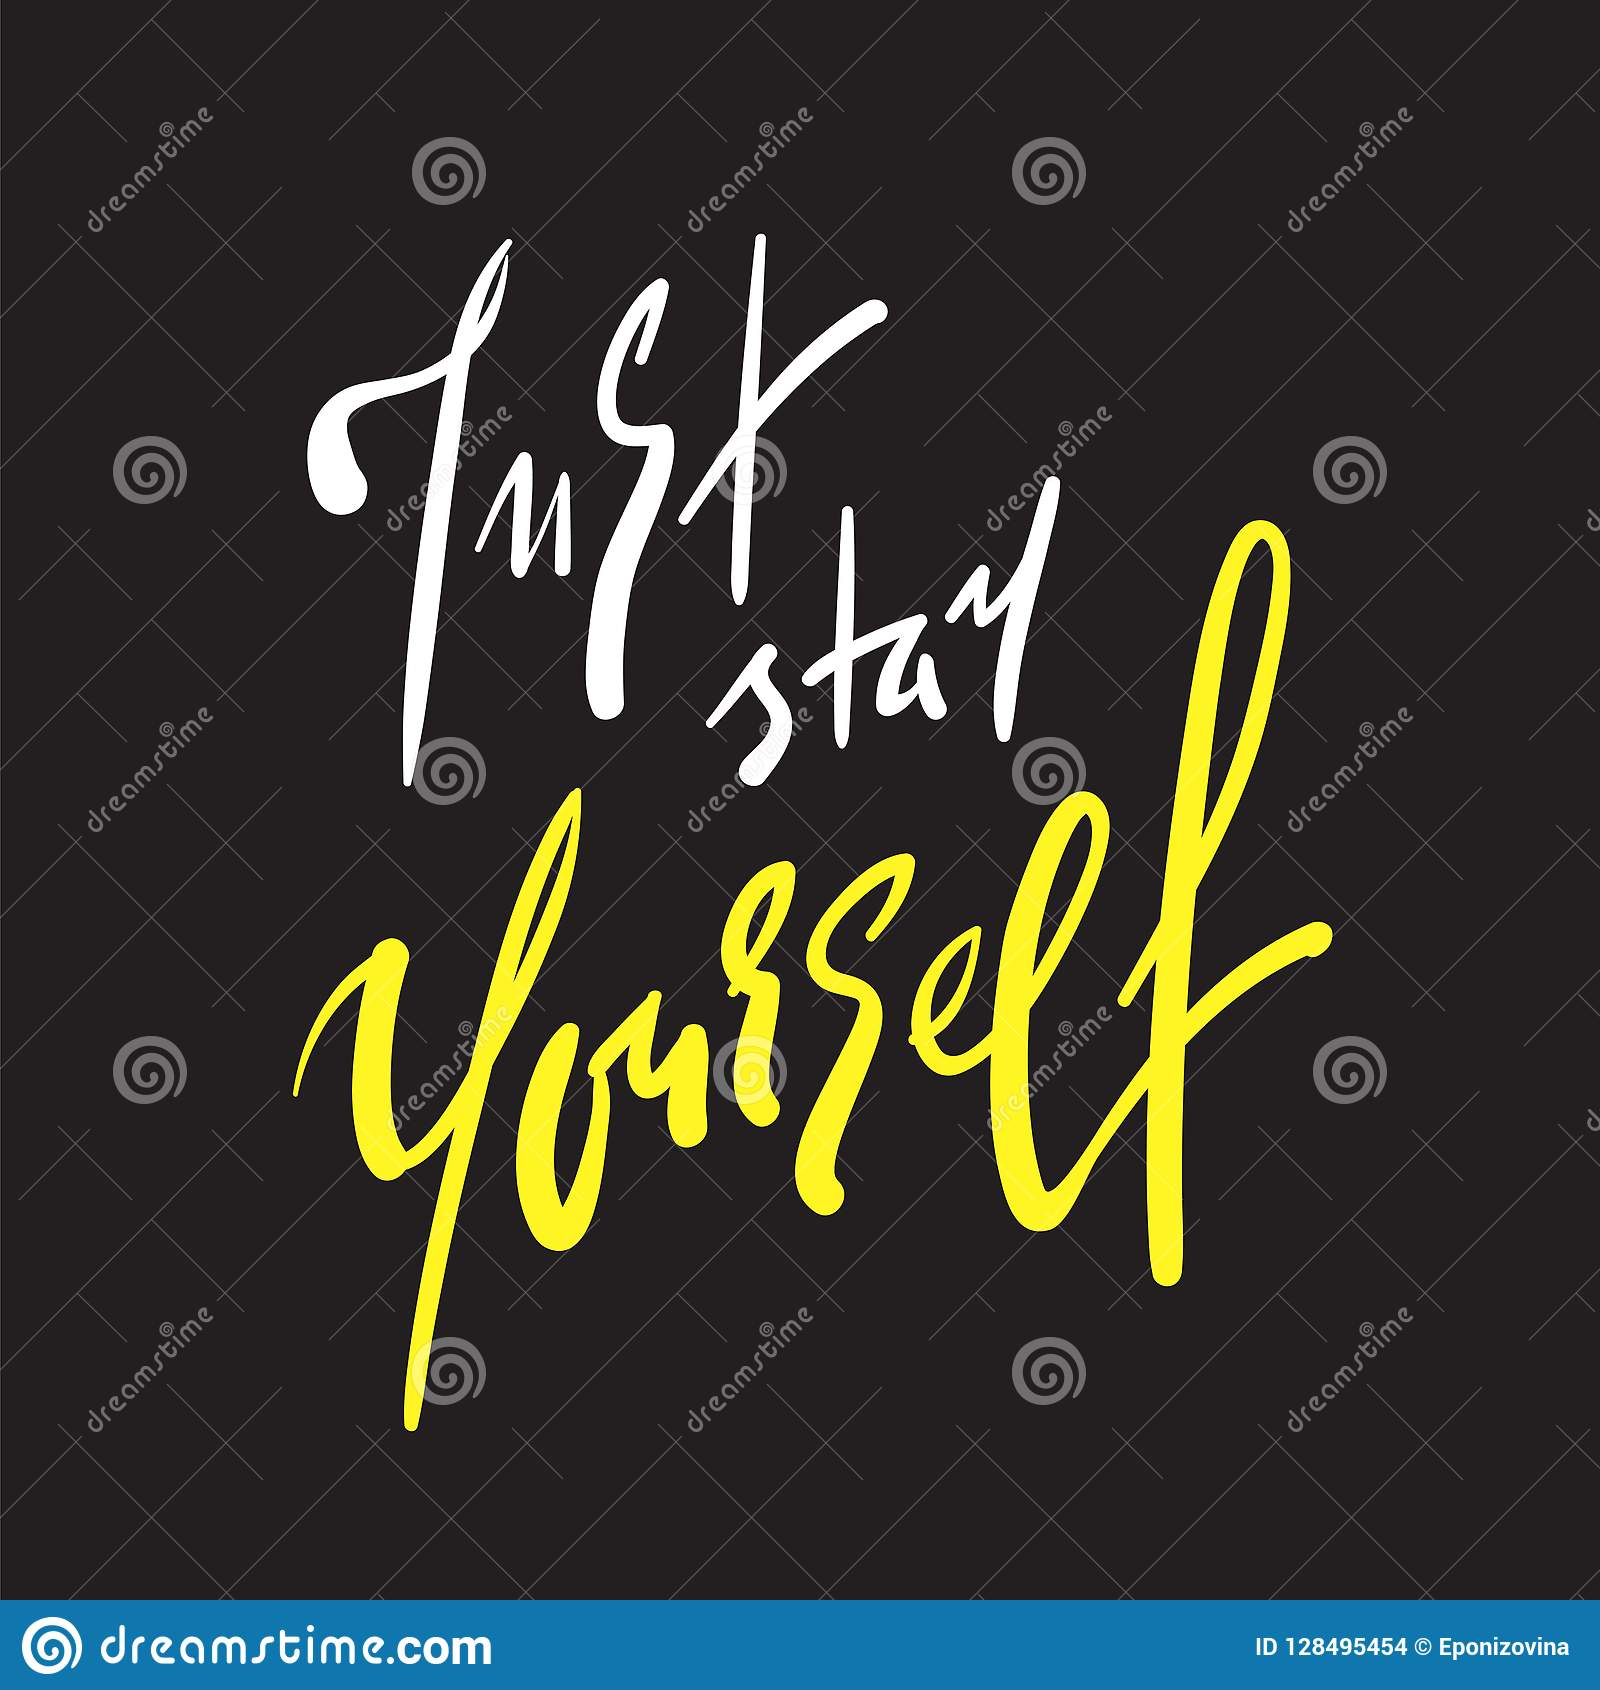 Just stay yourself - simple inspire and motivational quote. Hand drawn beautiful lettering